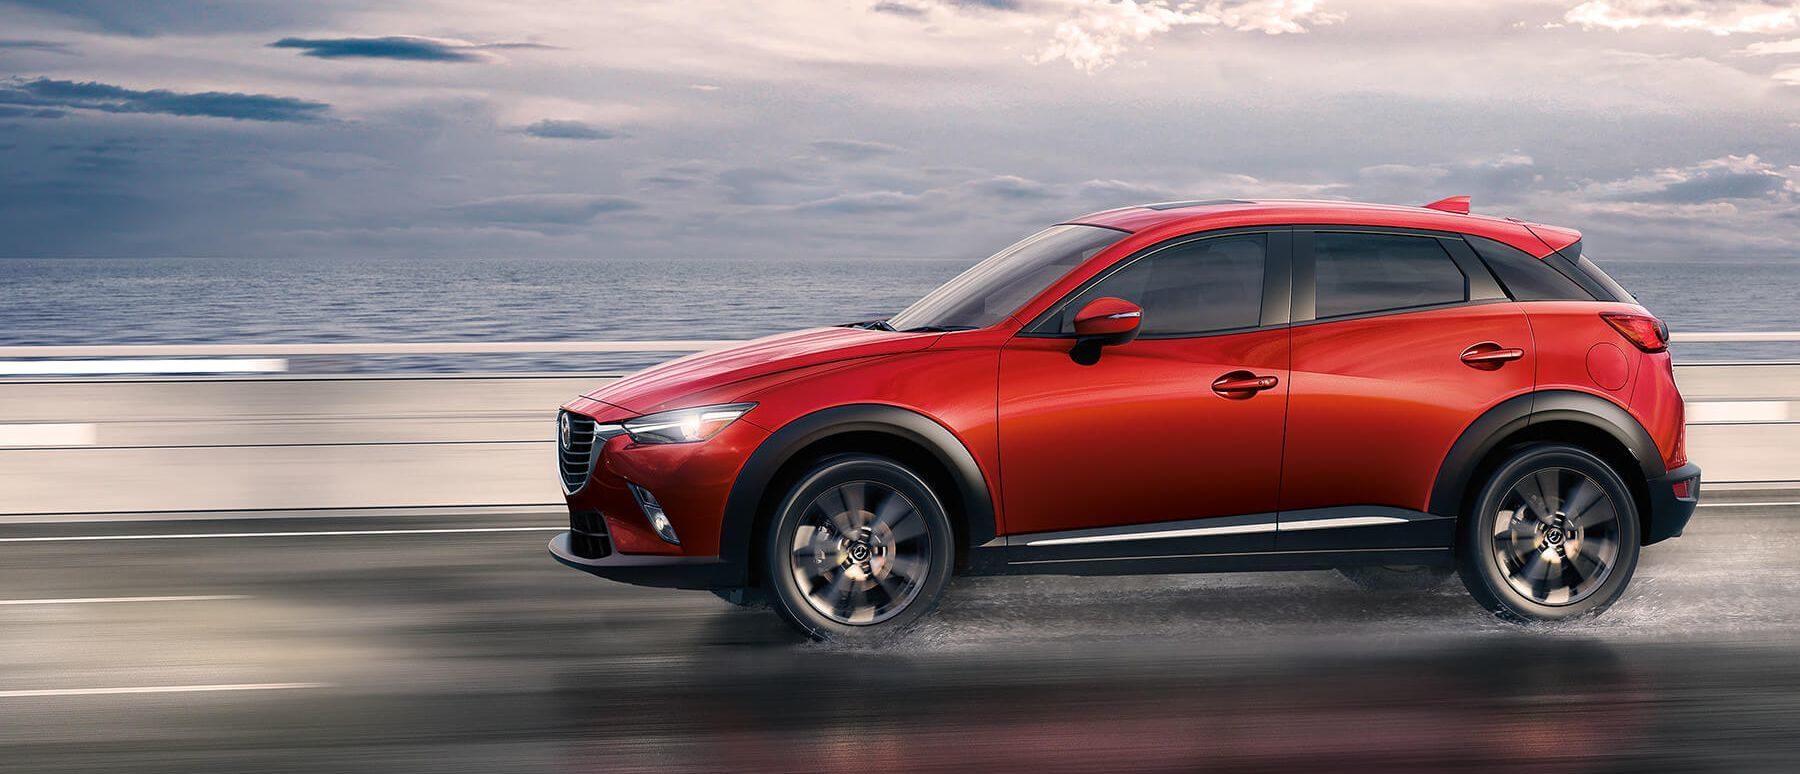 2017 mazda cx 3 for sale near destin fl mazda of fort walton beach. Black Bedroom Furniture Sets. Home Design Ideas